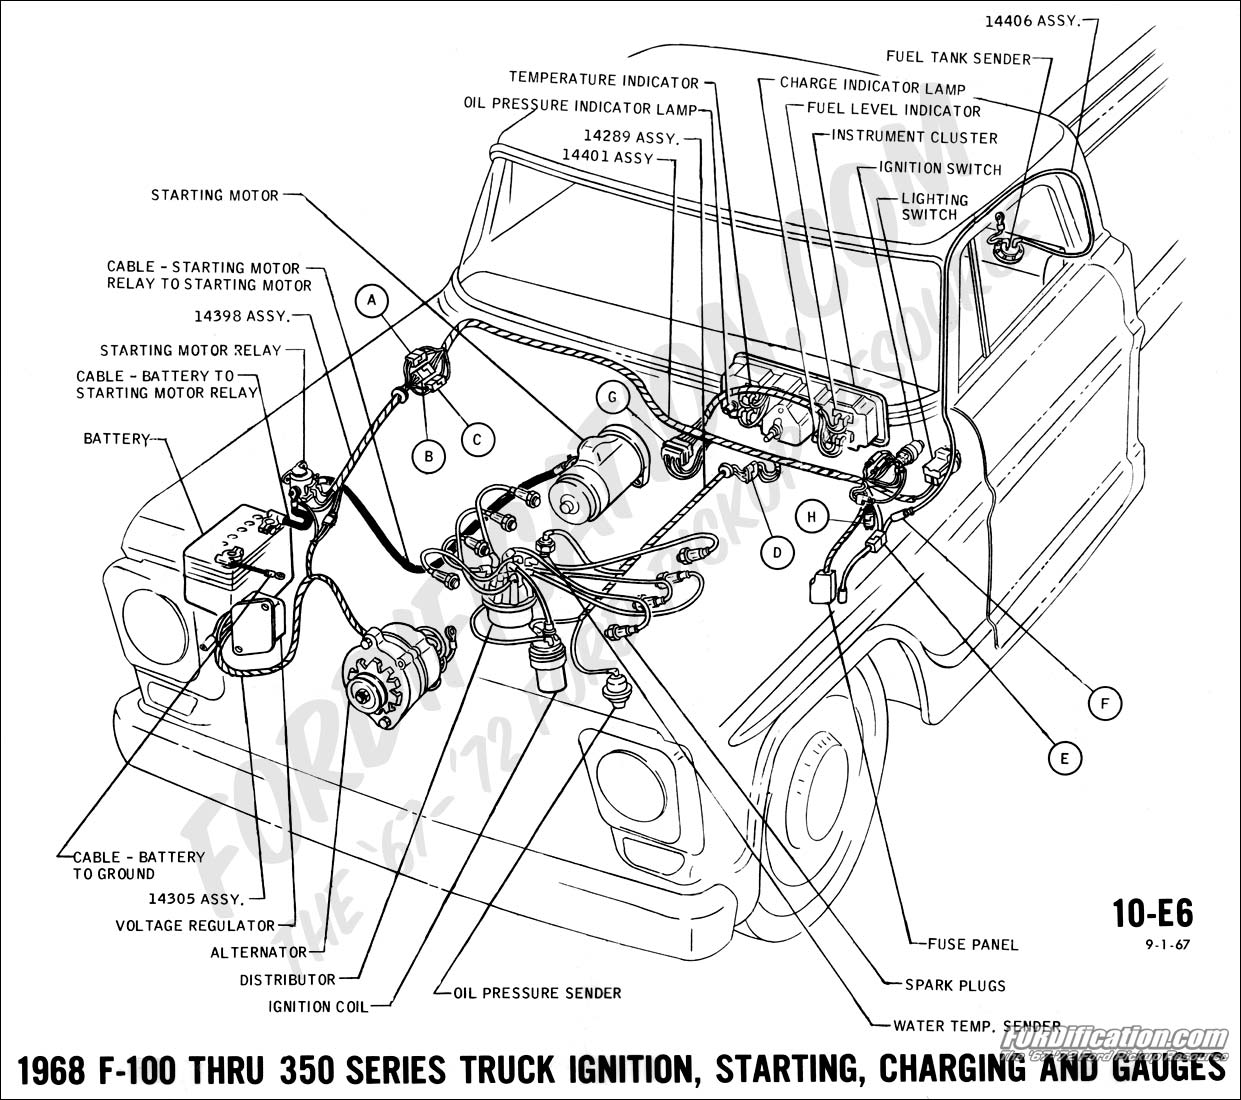 1969 Ford Alternator Wiring Diagram on Vintage Air Conditioning Wiring Diagram